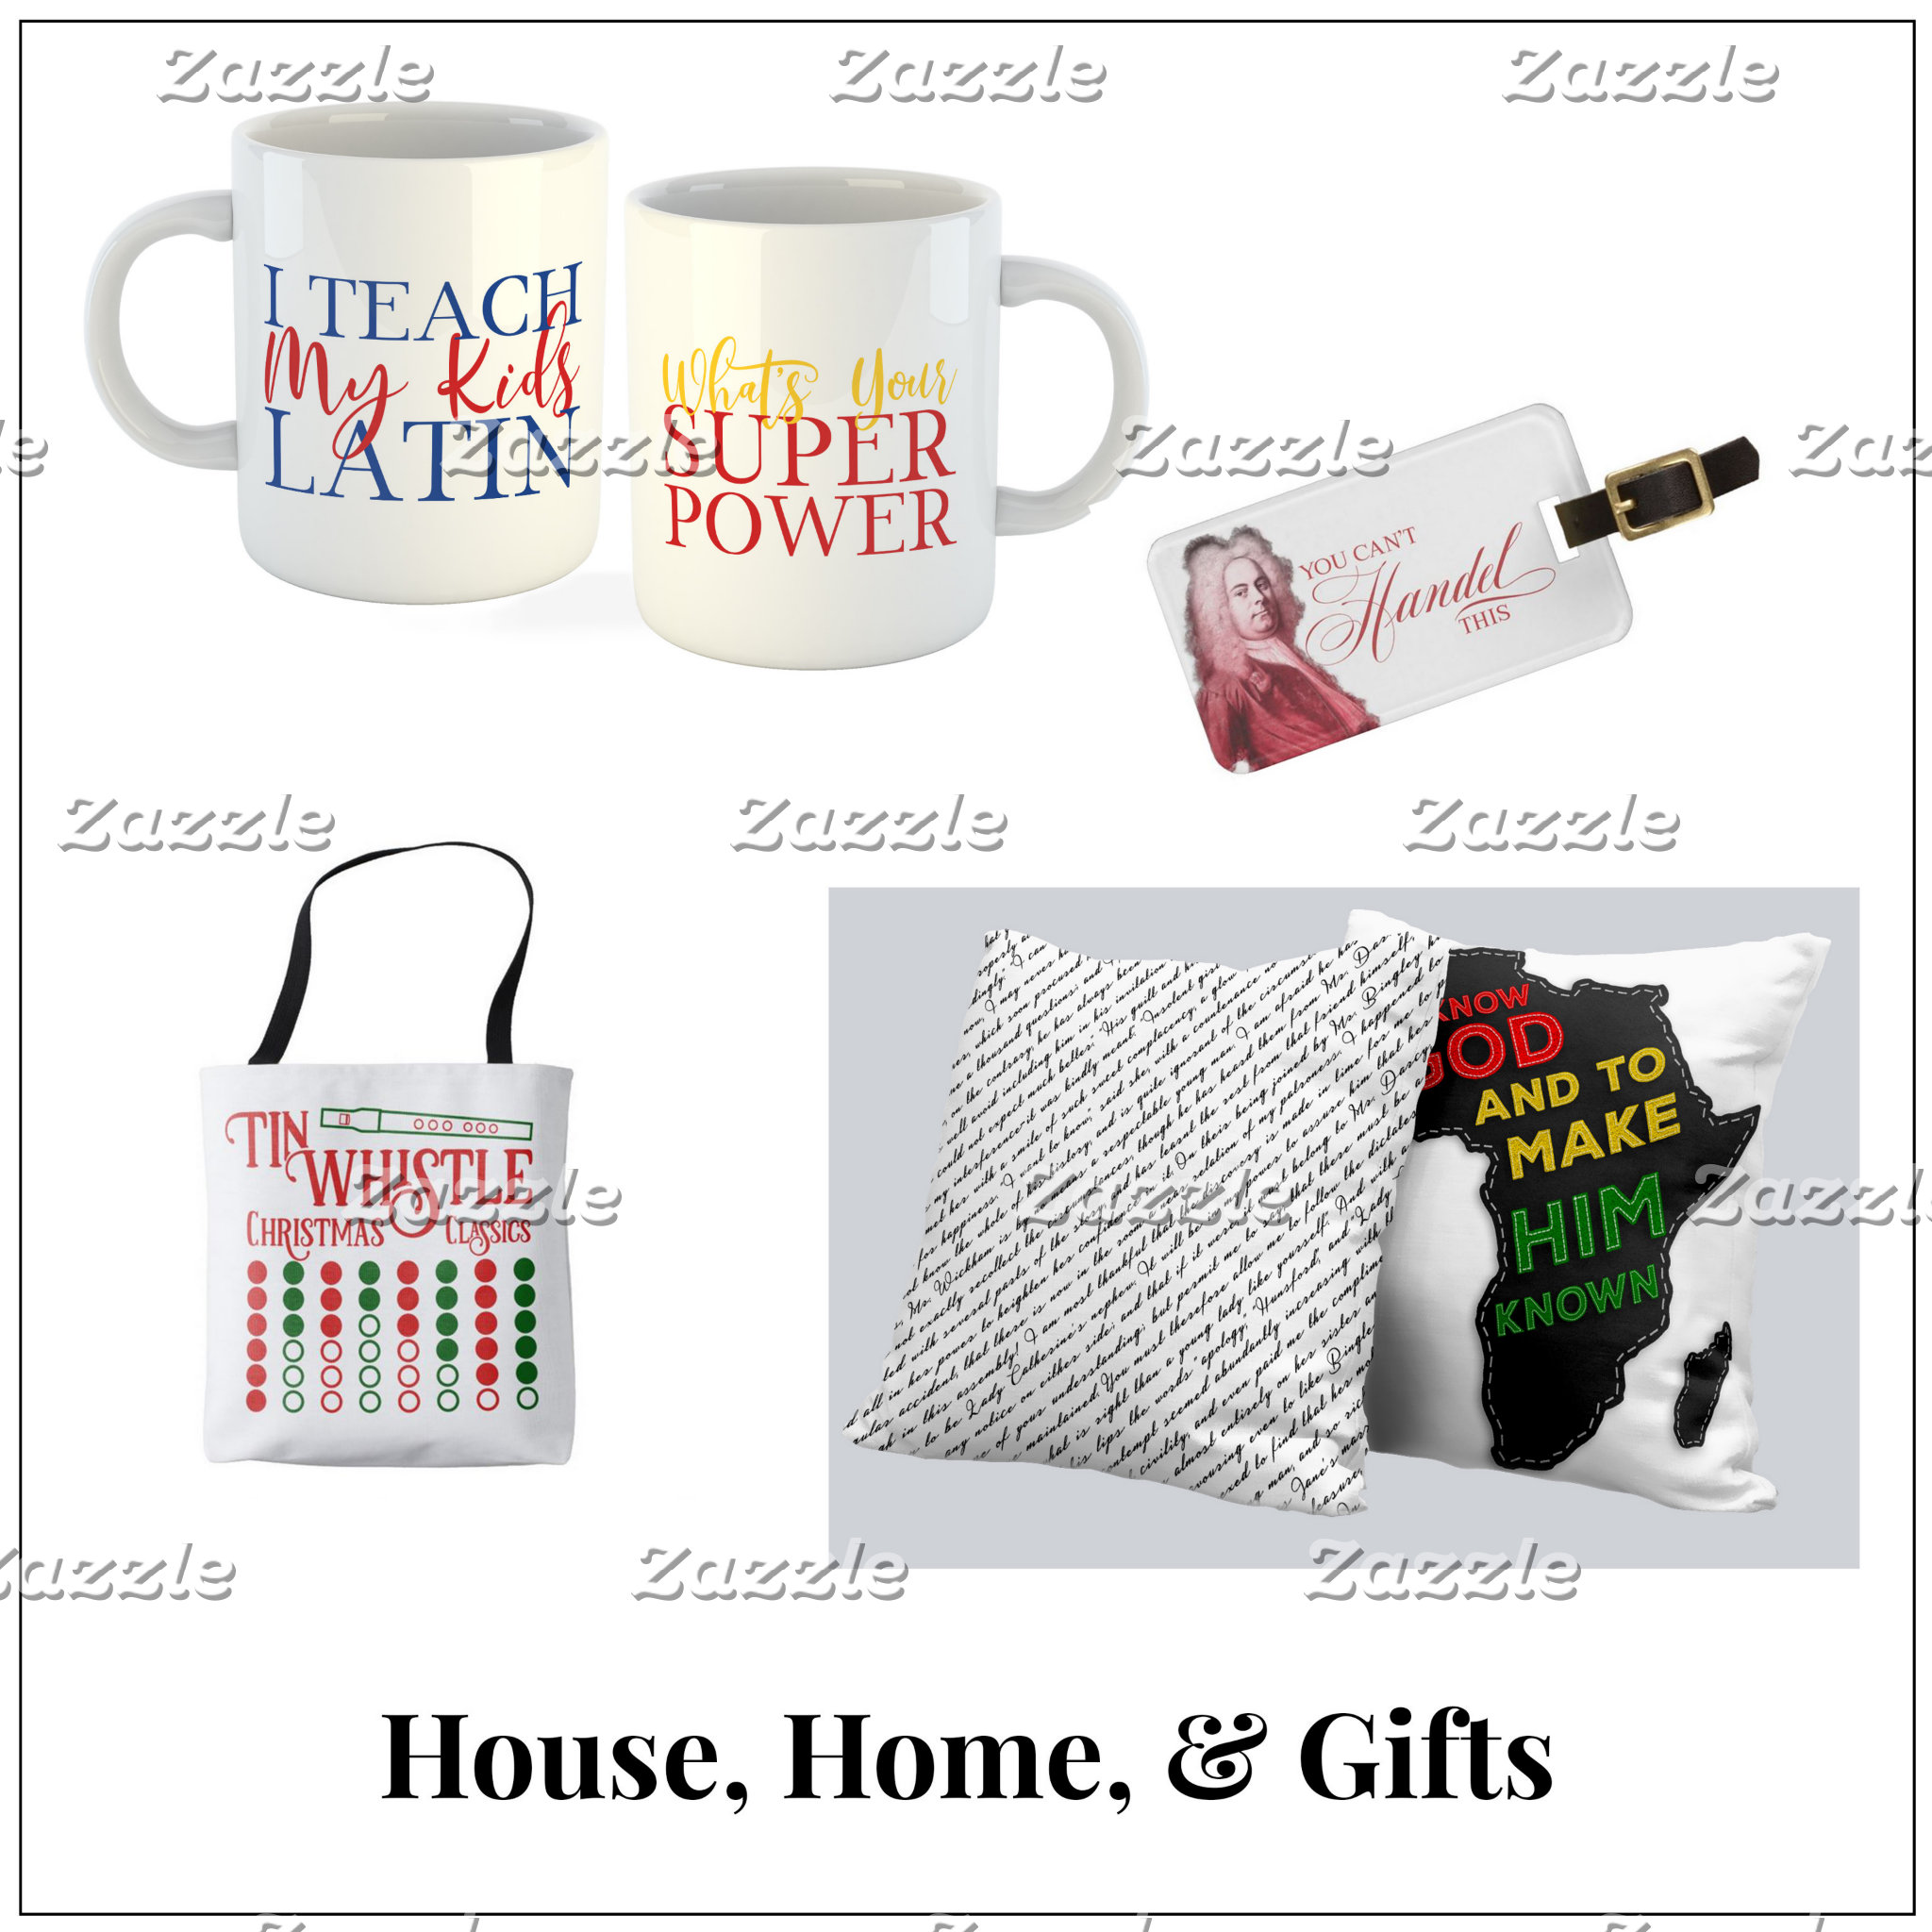 Housewares, Gifts, Stationery, & Office